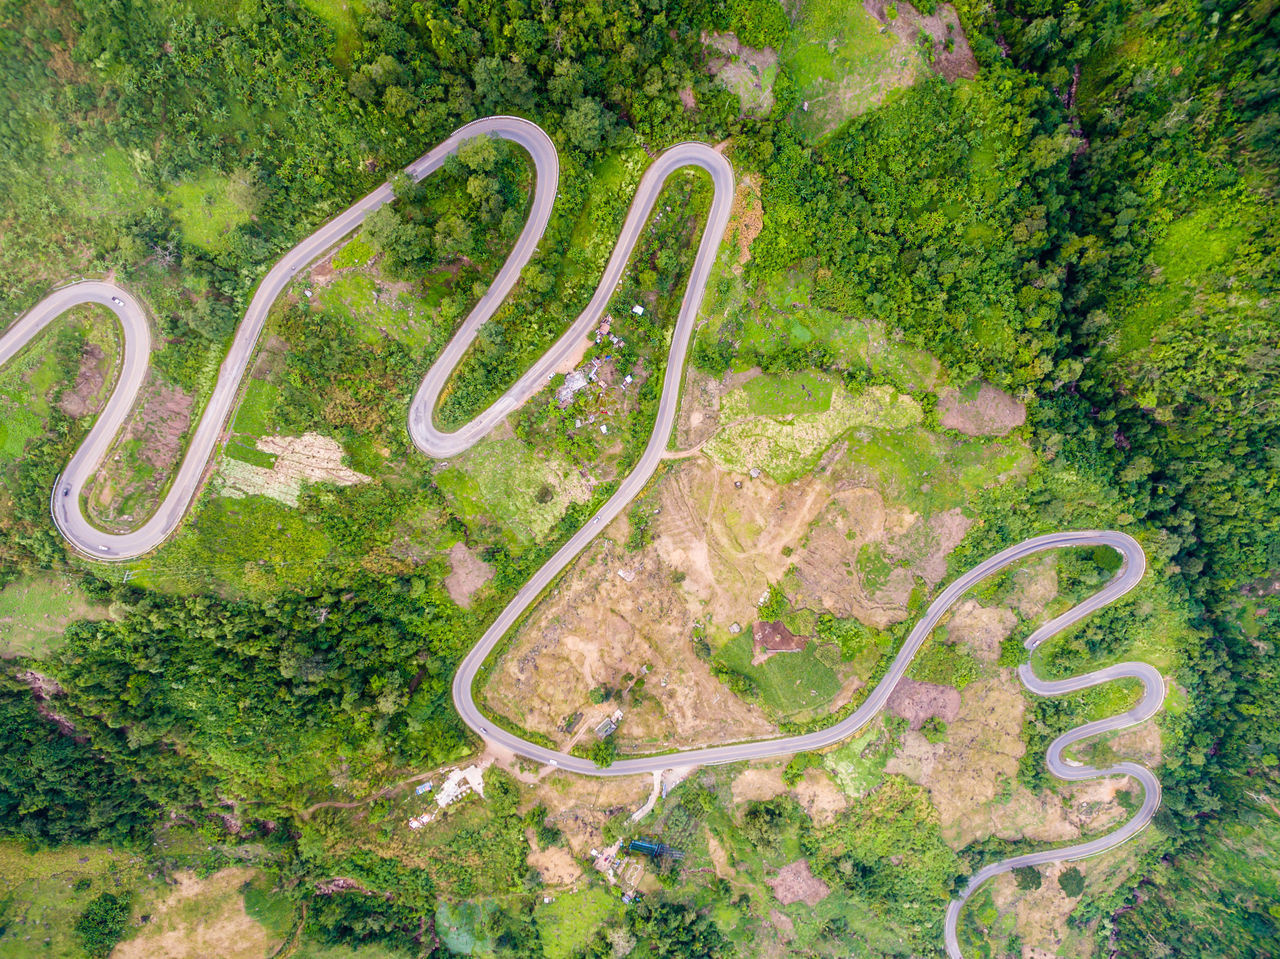 Aerial View Curve Day Flying High High Angle View Nature No People Outdoors Scenics Winding Road